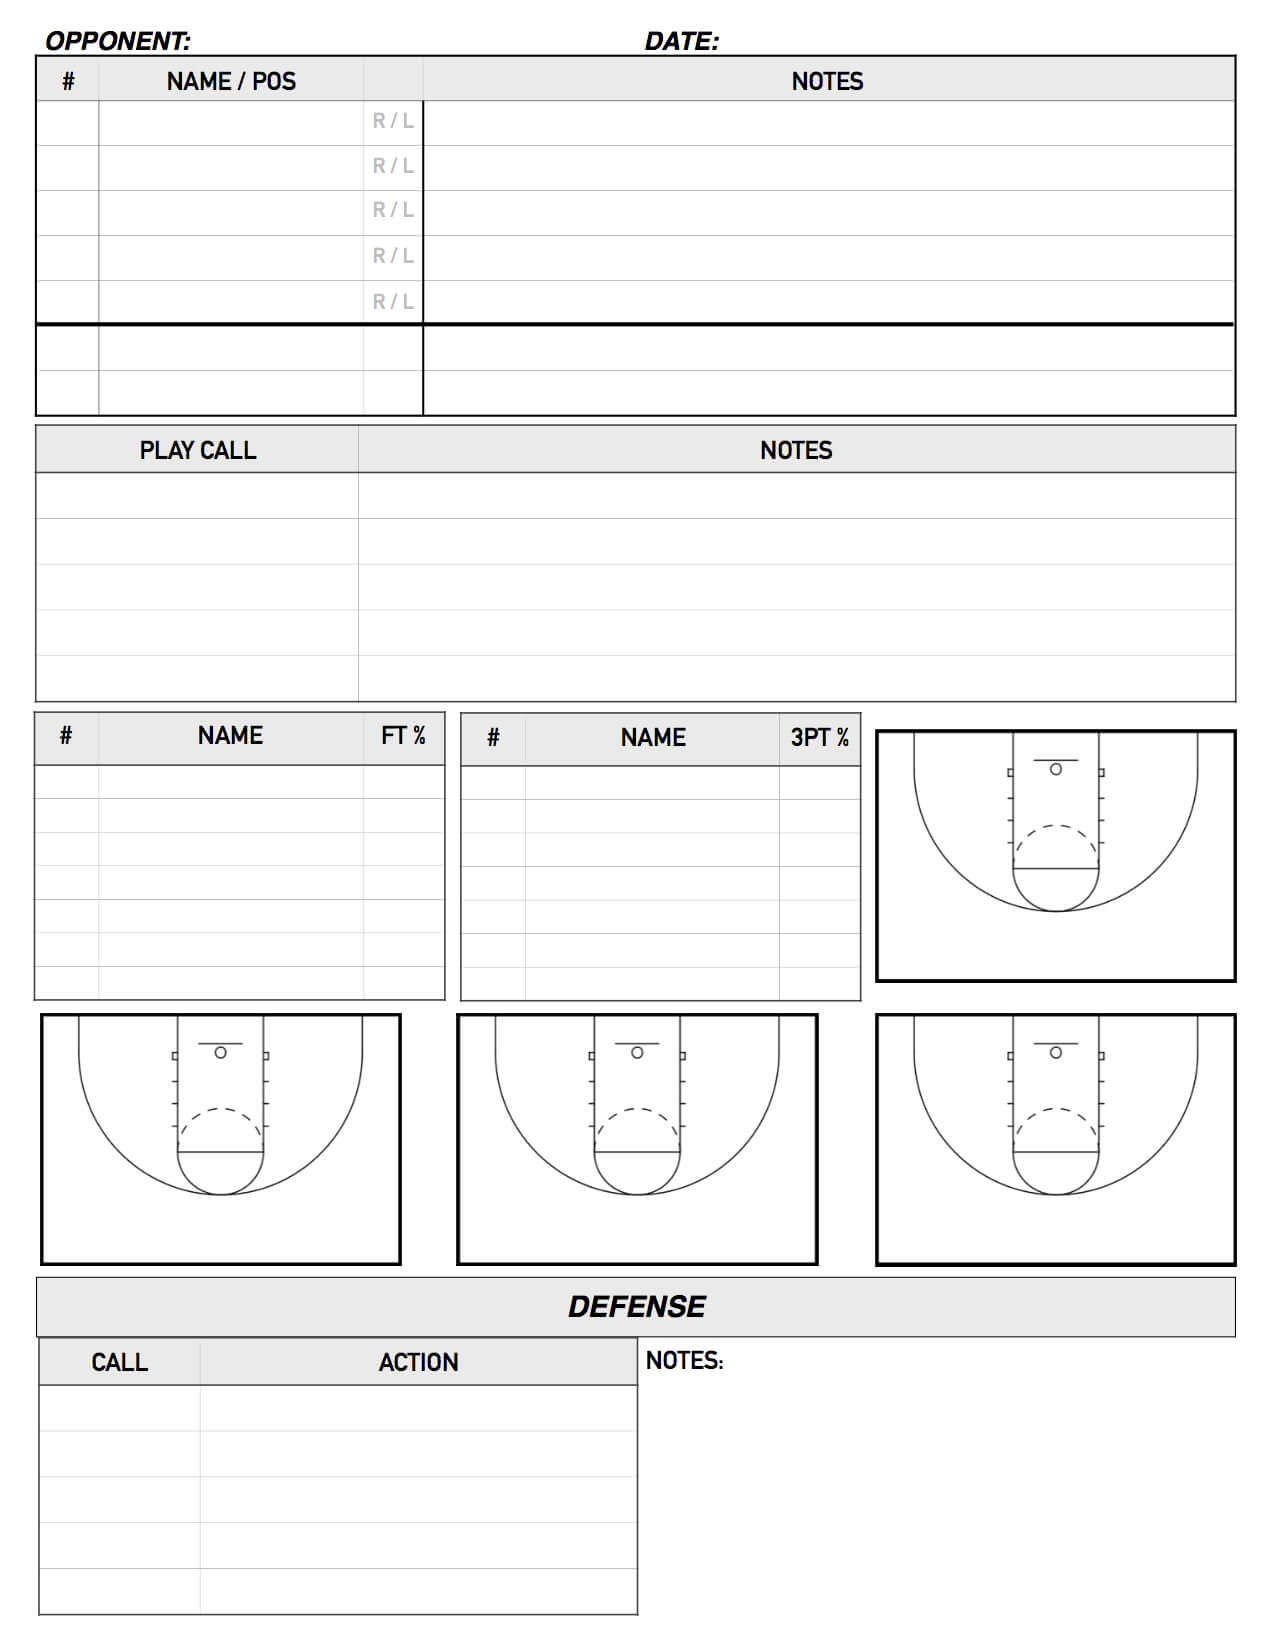 Report Examples College Basketball Scouting Template Team Regarding Basketball Scouting Report Template